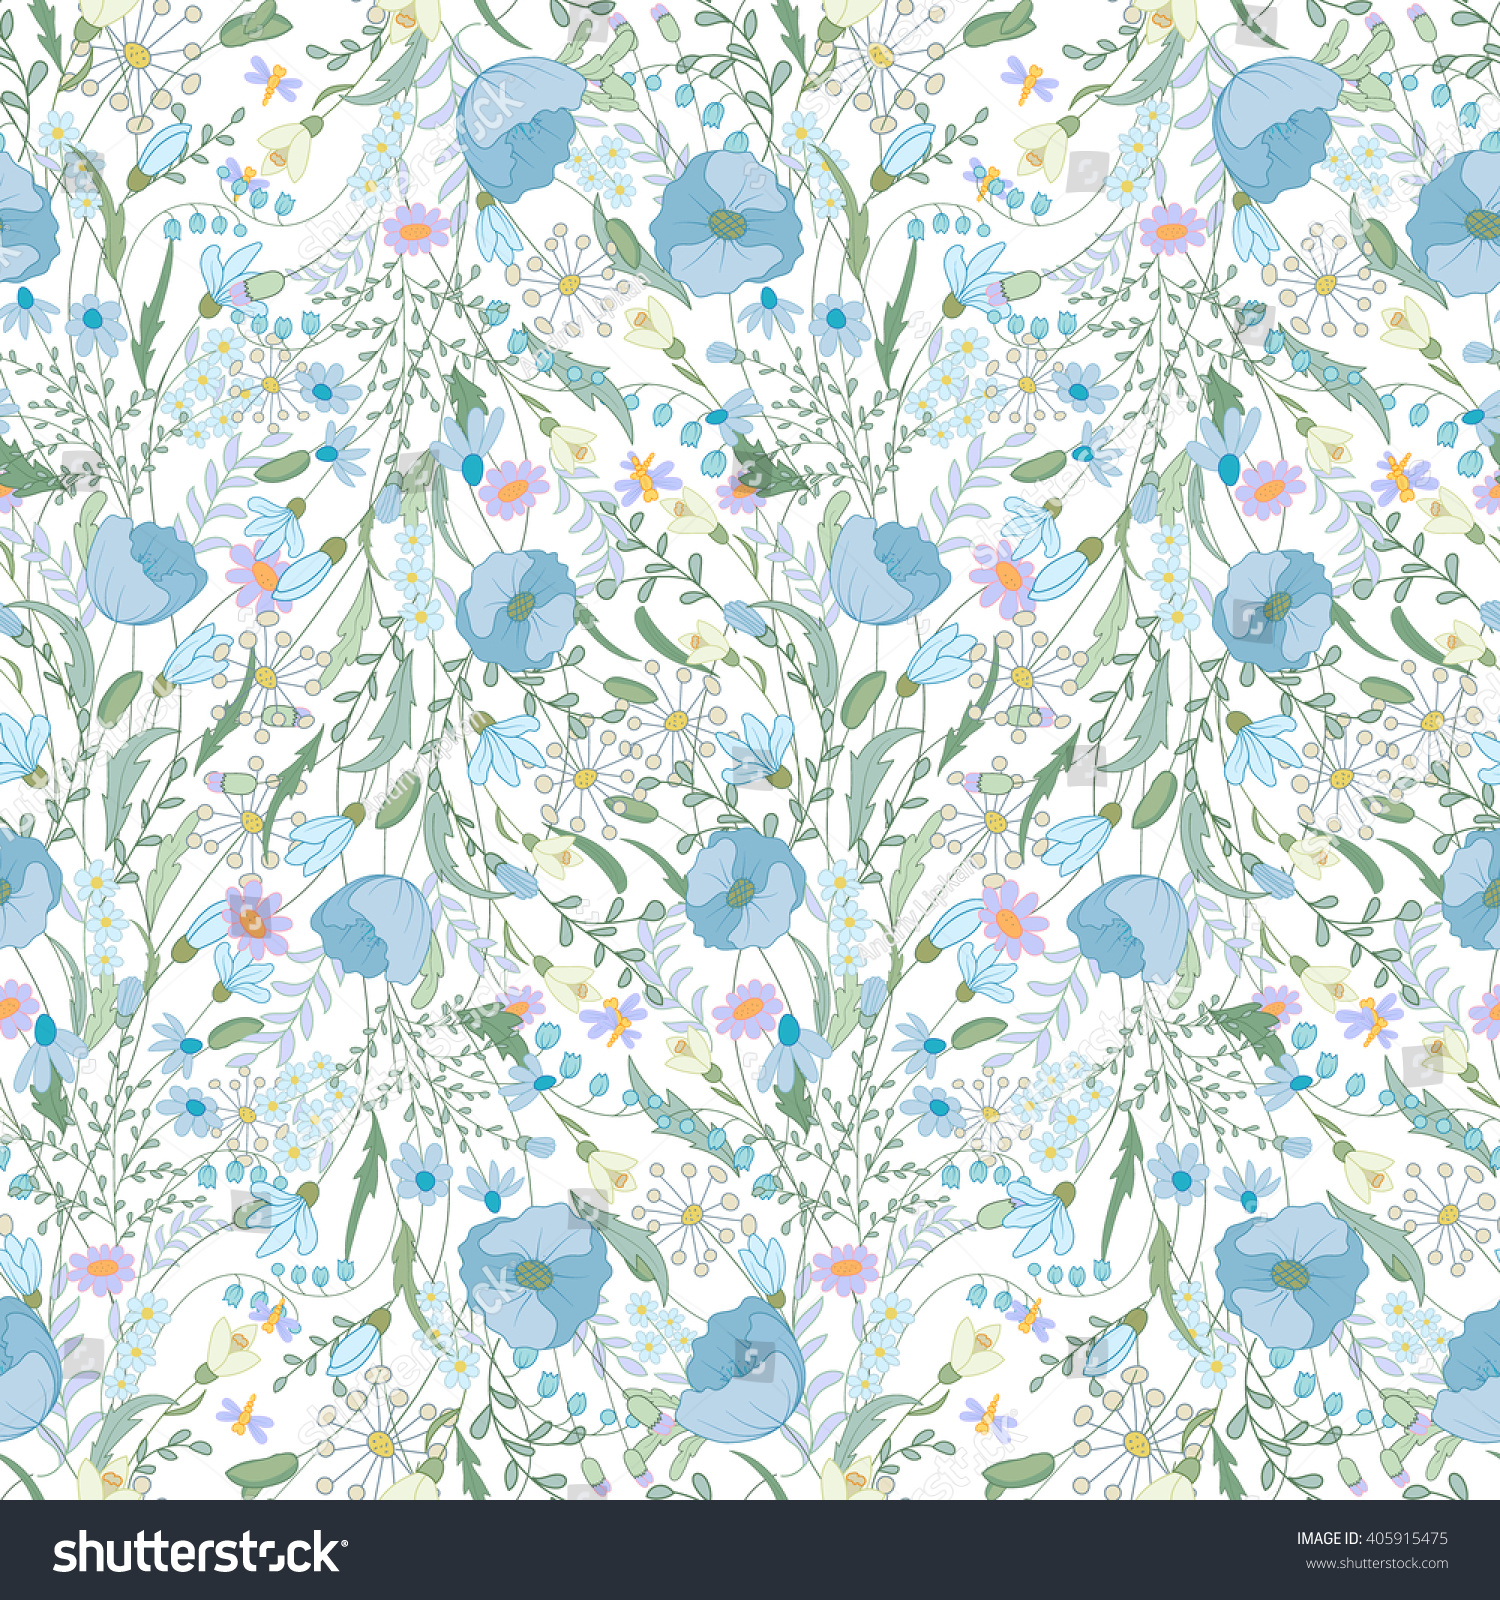 Romantic vector seamless background greeting card wallpaper vector art - Blue Spring Flowers Seamless Pattern Endless Print For Romantic Design Decoration Greeting Cards